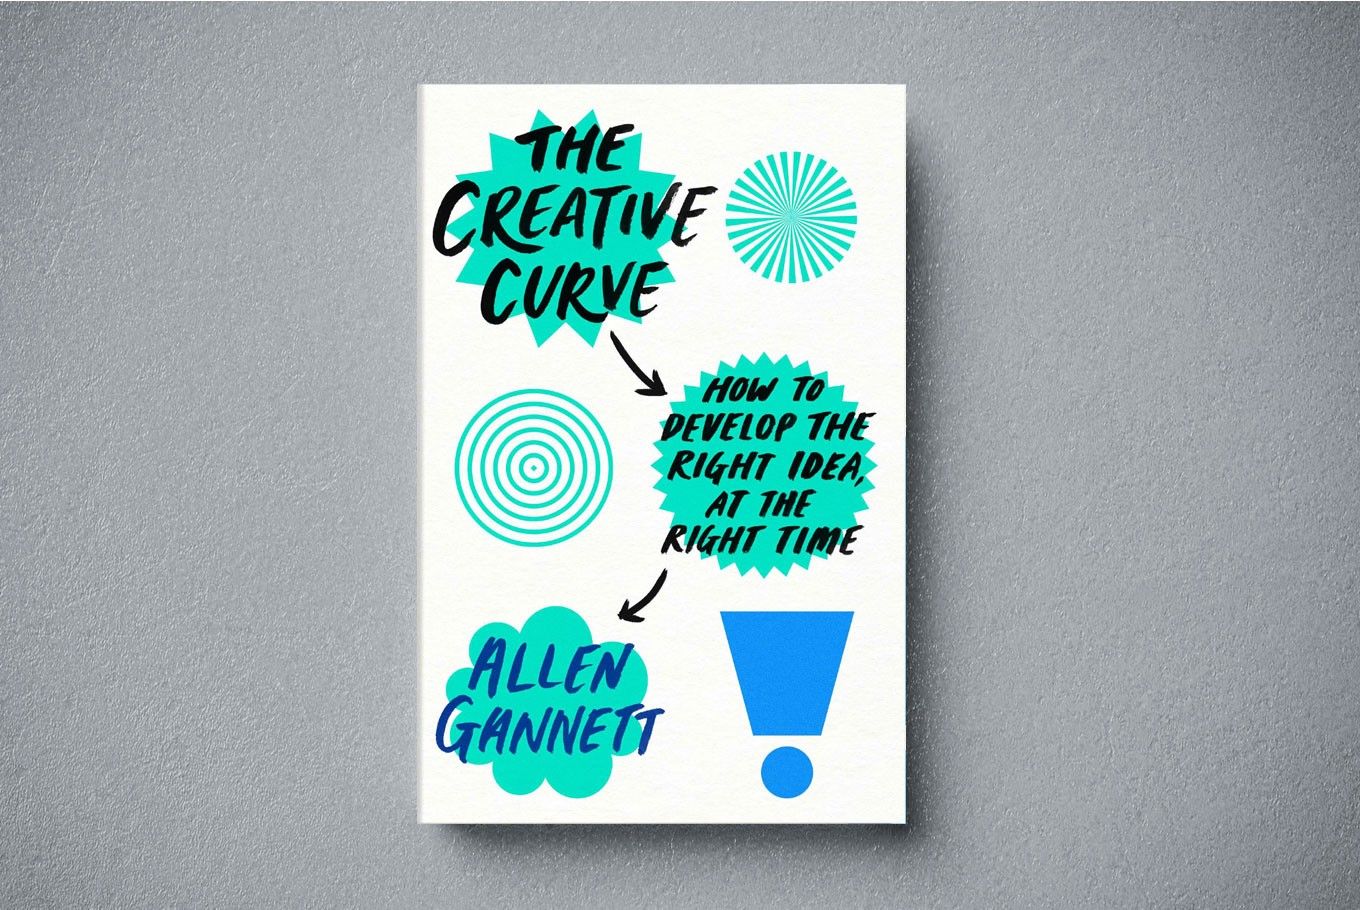 'The Creative Curve': Creativity principles and what you can do to be more creative